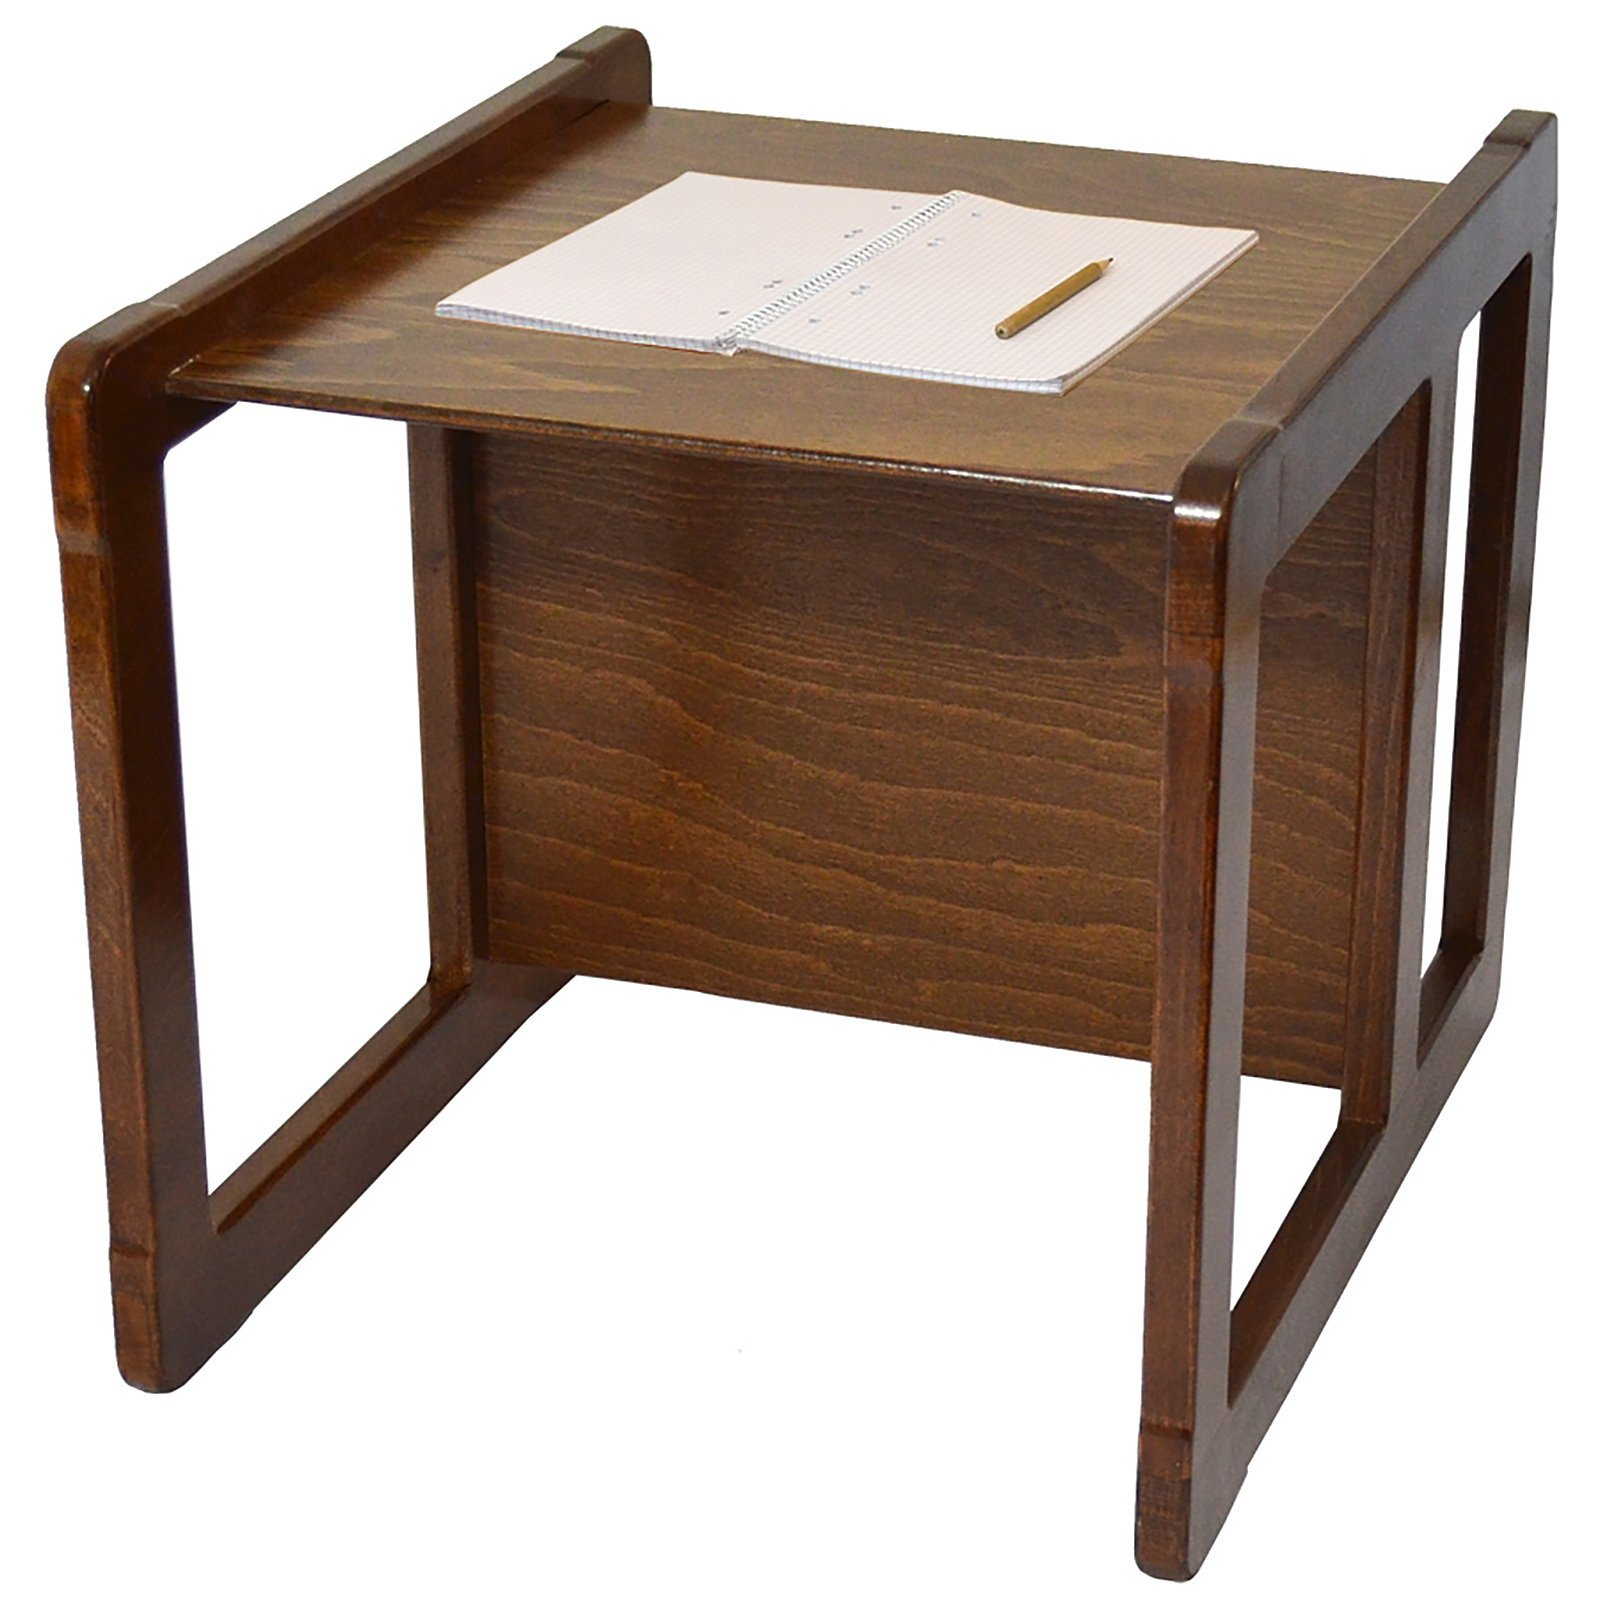 3 in 1 Childrens Multifunctional Furniture Set of 2, One Small Chair or Table and One Large Chair or Table Beech Wood, Dark Stained by Obique Ltd (Image #8)